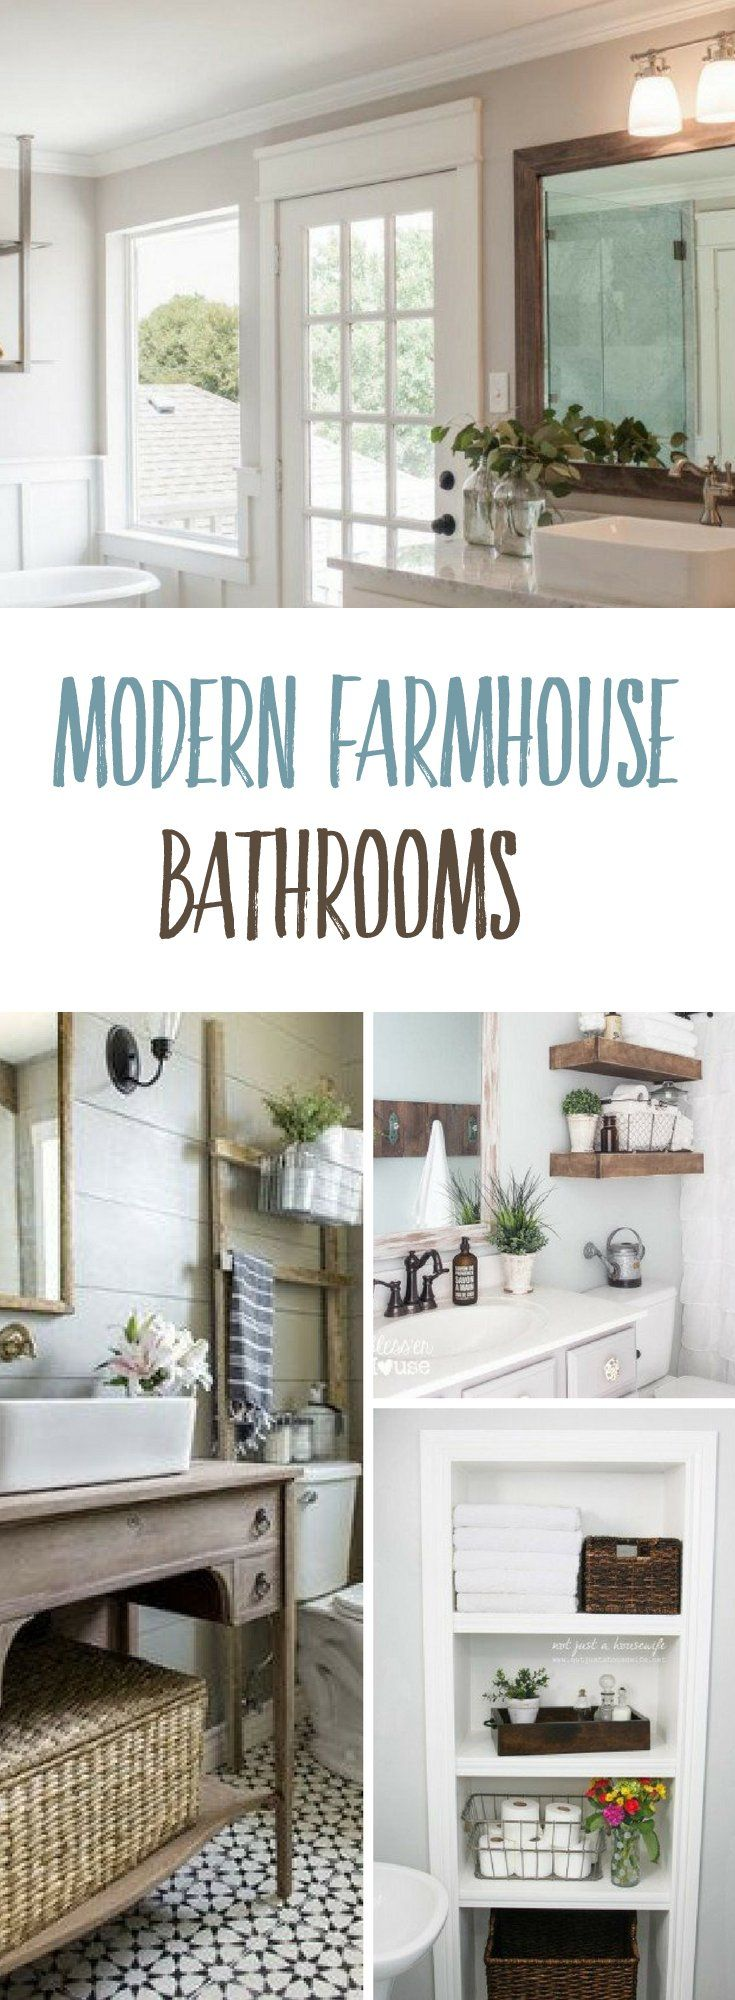 best farmhouse bathrooms images on pinterest bathroom